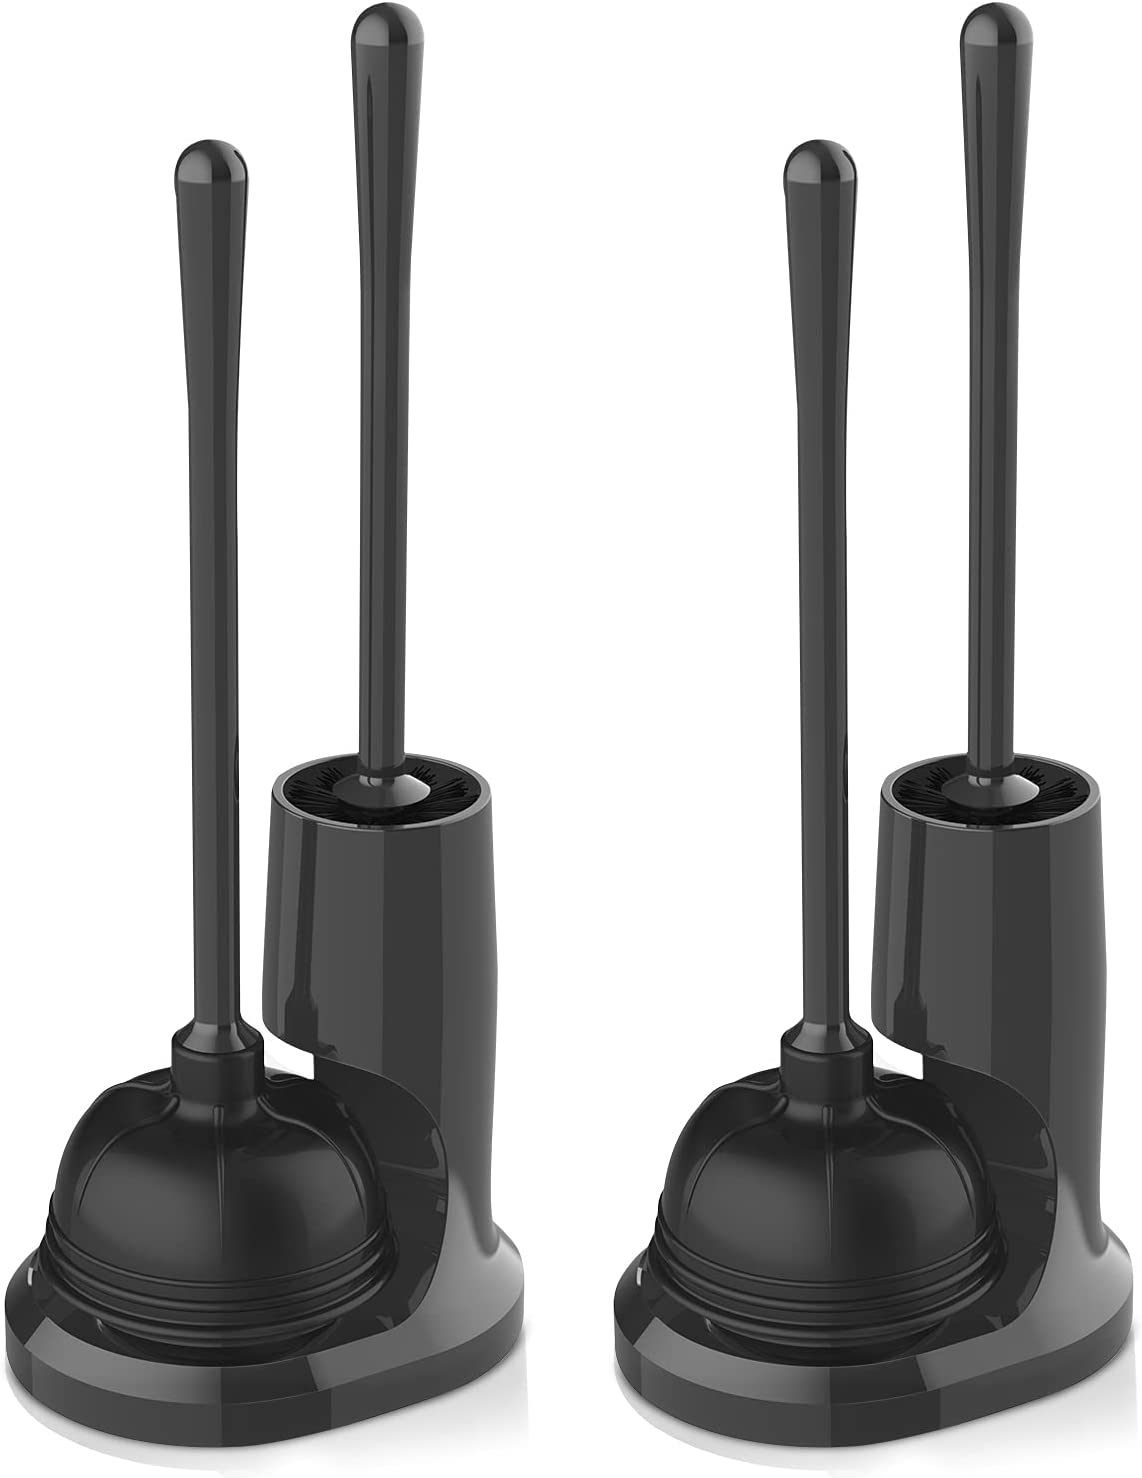 uptronic Toilet Plunger and Brush, Bowl Brush and Heavy Duty Toilet Plunger Set with Holder, 2-in-1 Bathroom Cleaning Combo with Modern Caddy Stand (Black, 2 Set): Home & Kitchen